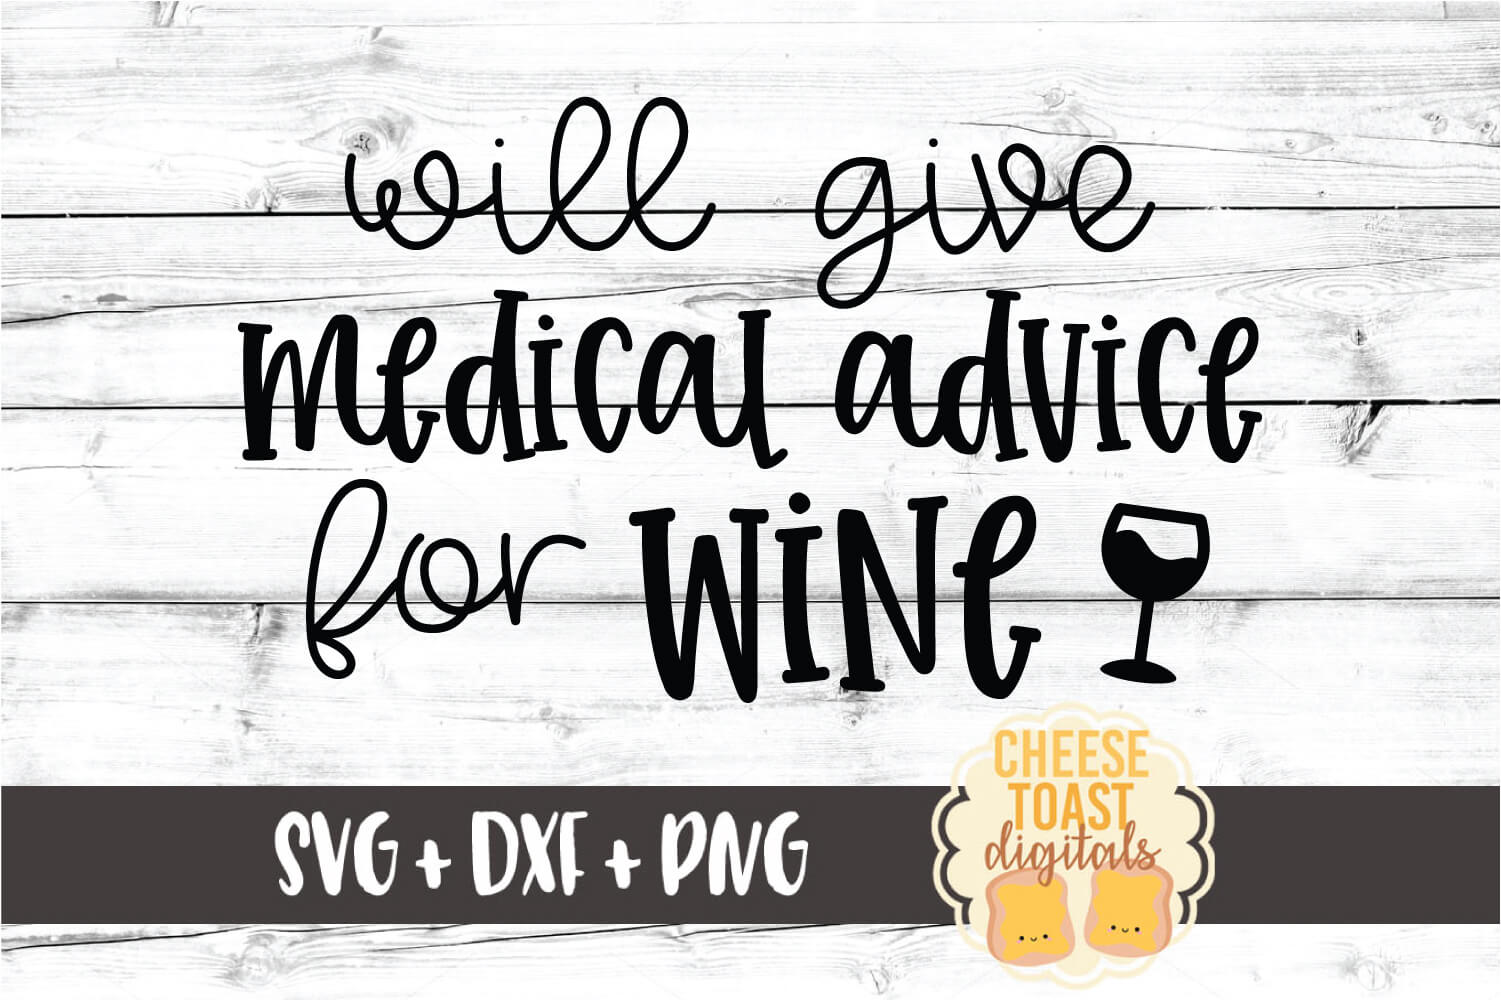 Will Give Medical Advice for Wine - Nurse SVG PNG DXF Files example image 2